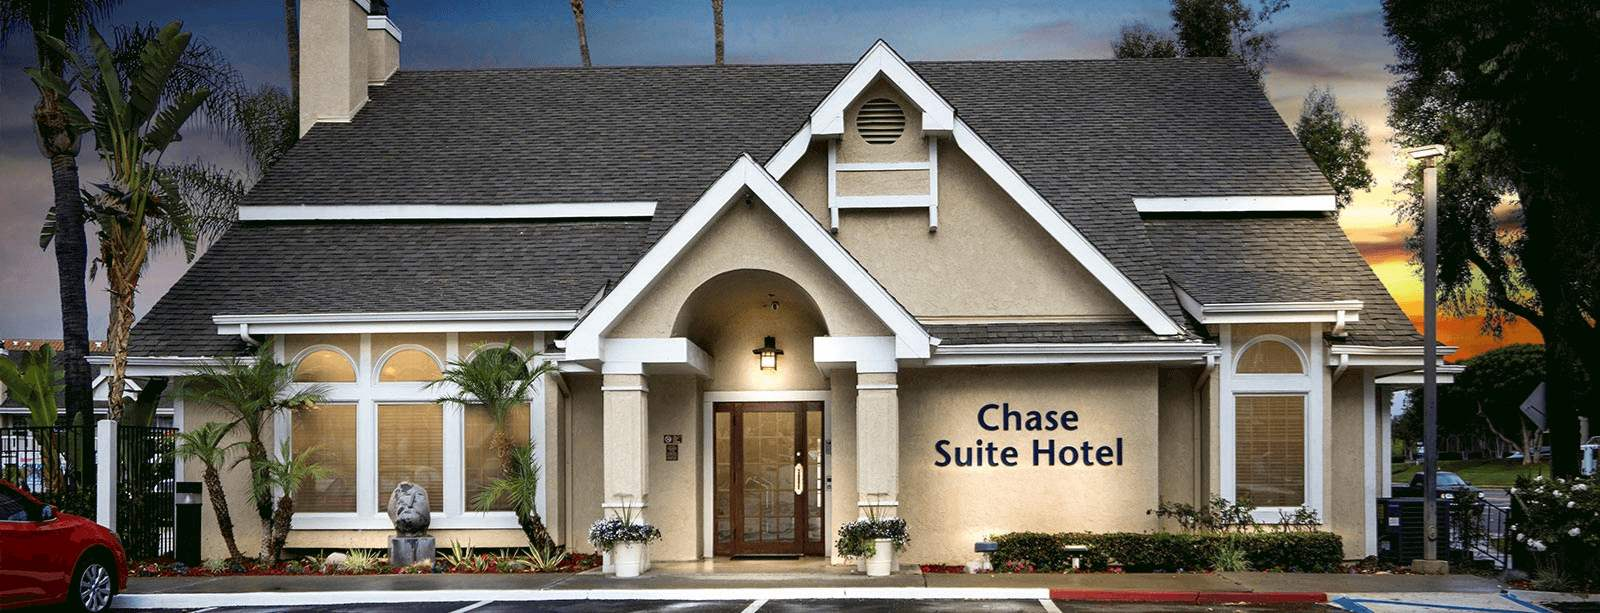 chase-suite-hotel-brea-home1-top.jpg